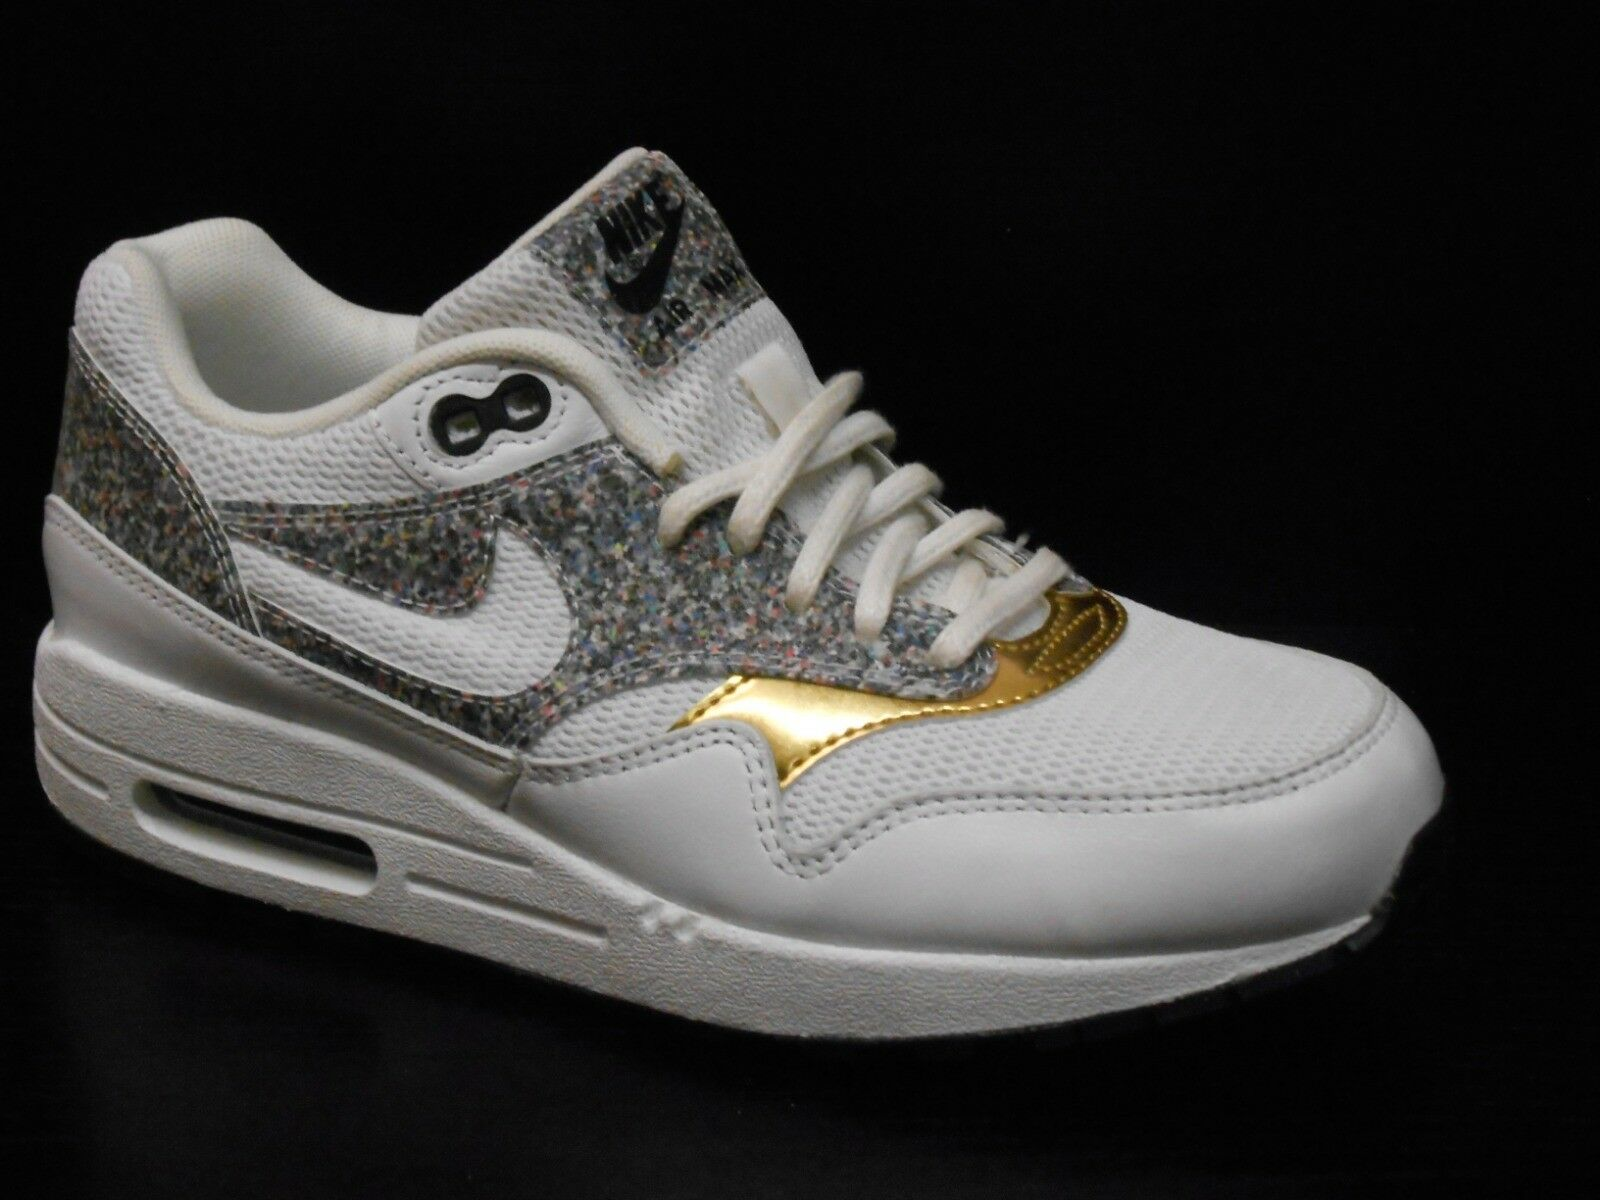 Nike Air Max 1 Womens formateur en cours d'exécution chaussure taille 3.5